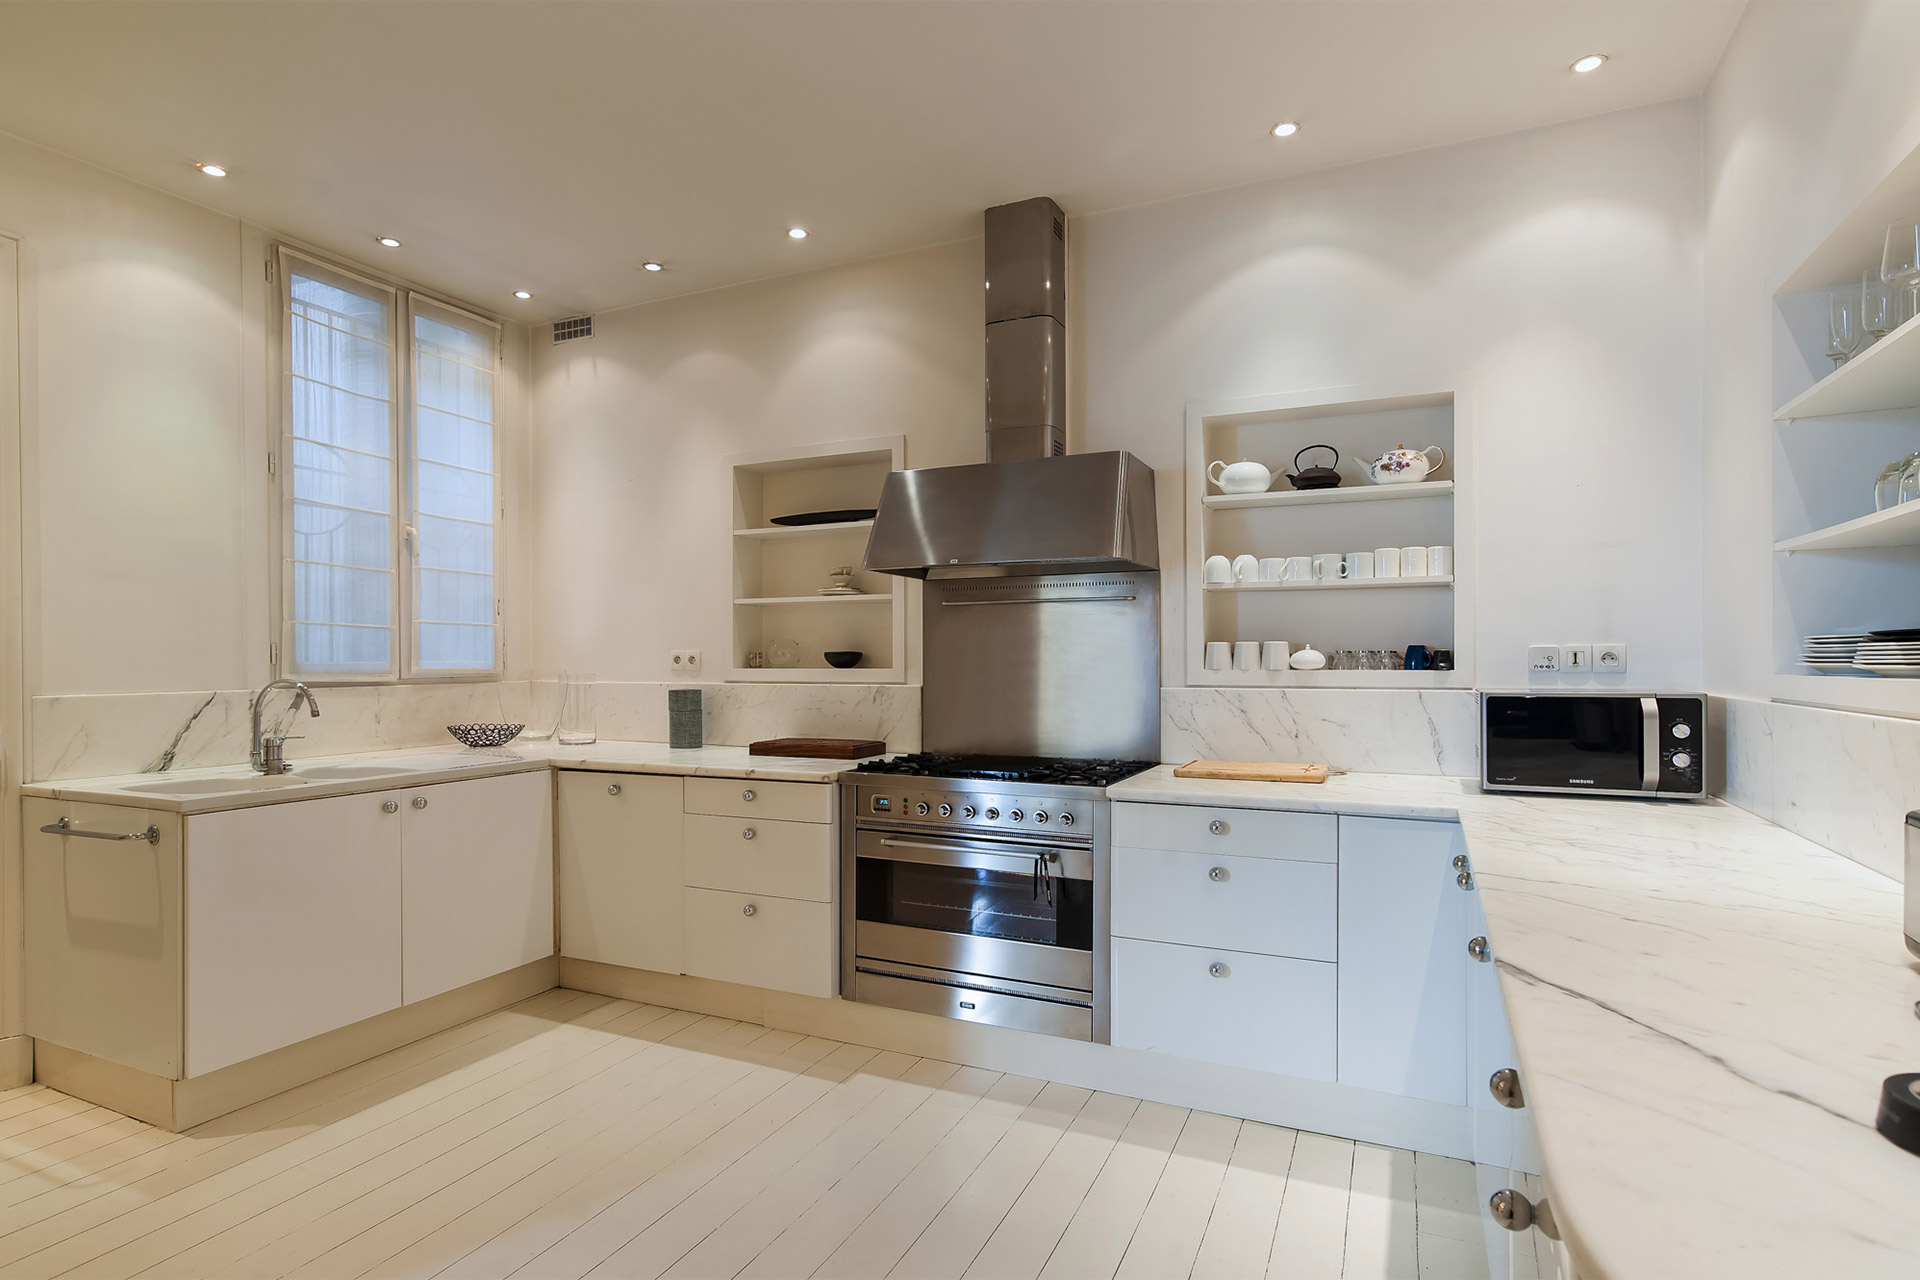 Large kitchen opens directly onto the round breakfast nook in the Cavailles Paris Perfect rental